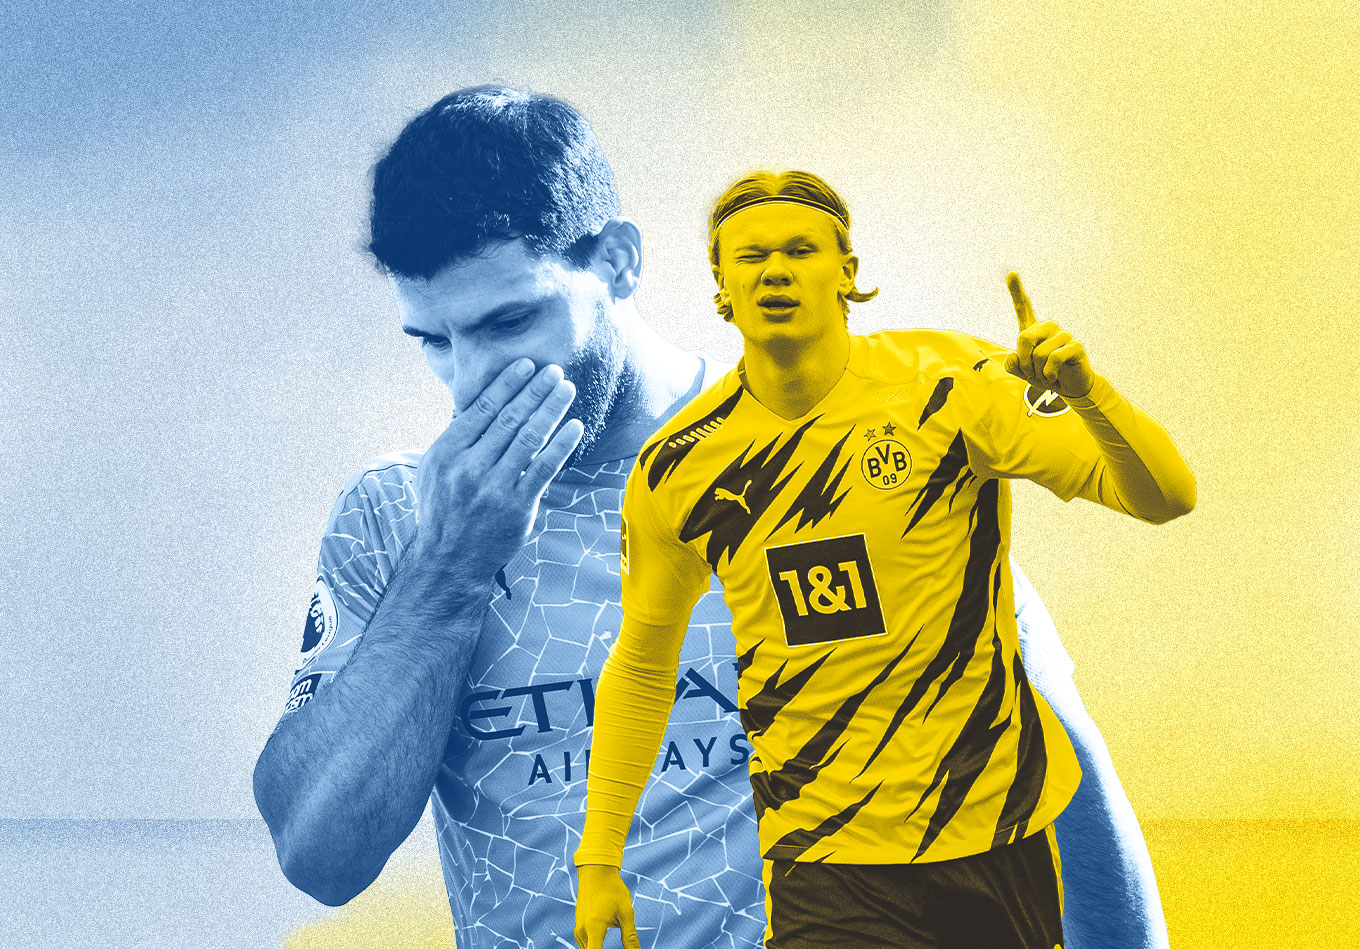 Guardiola's Next No. 9? Haaland Set to Audition for Football's Toughest Gig